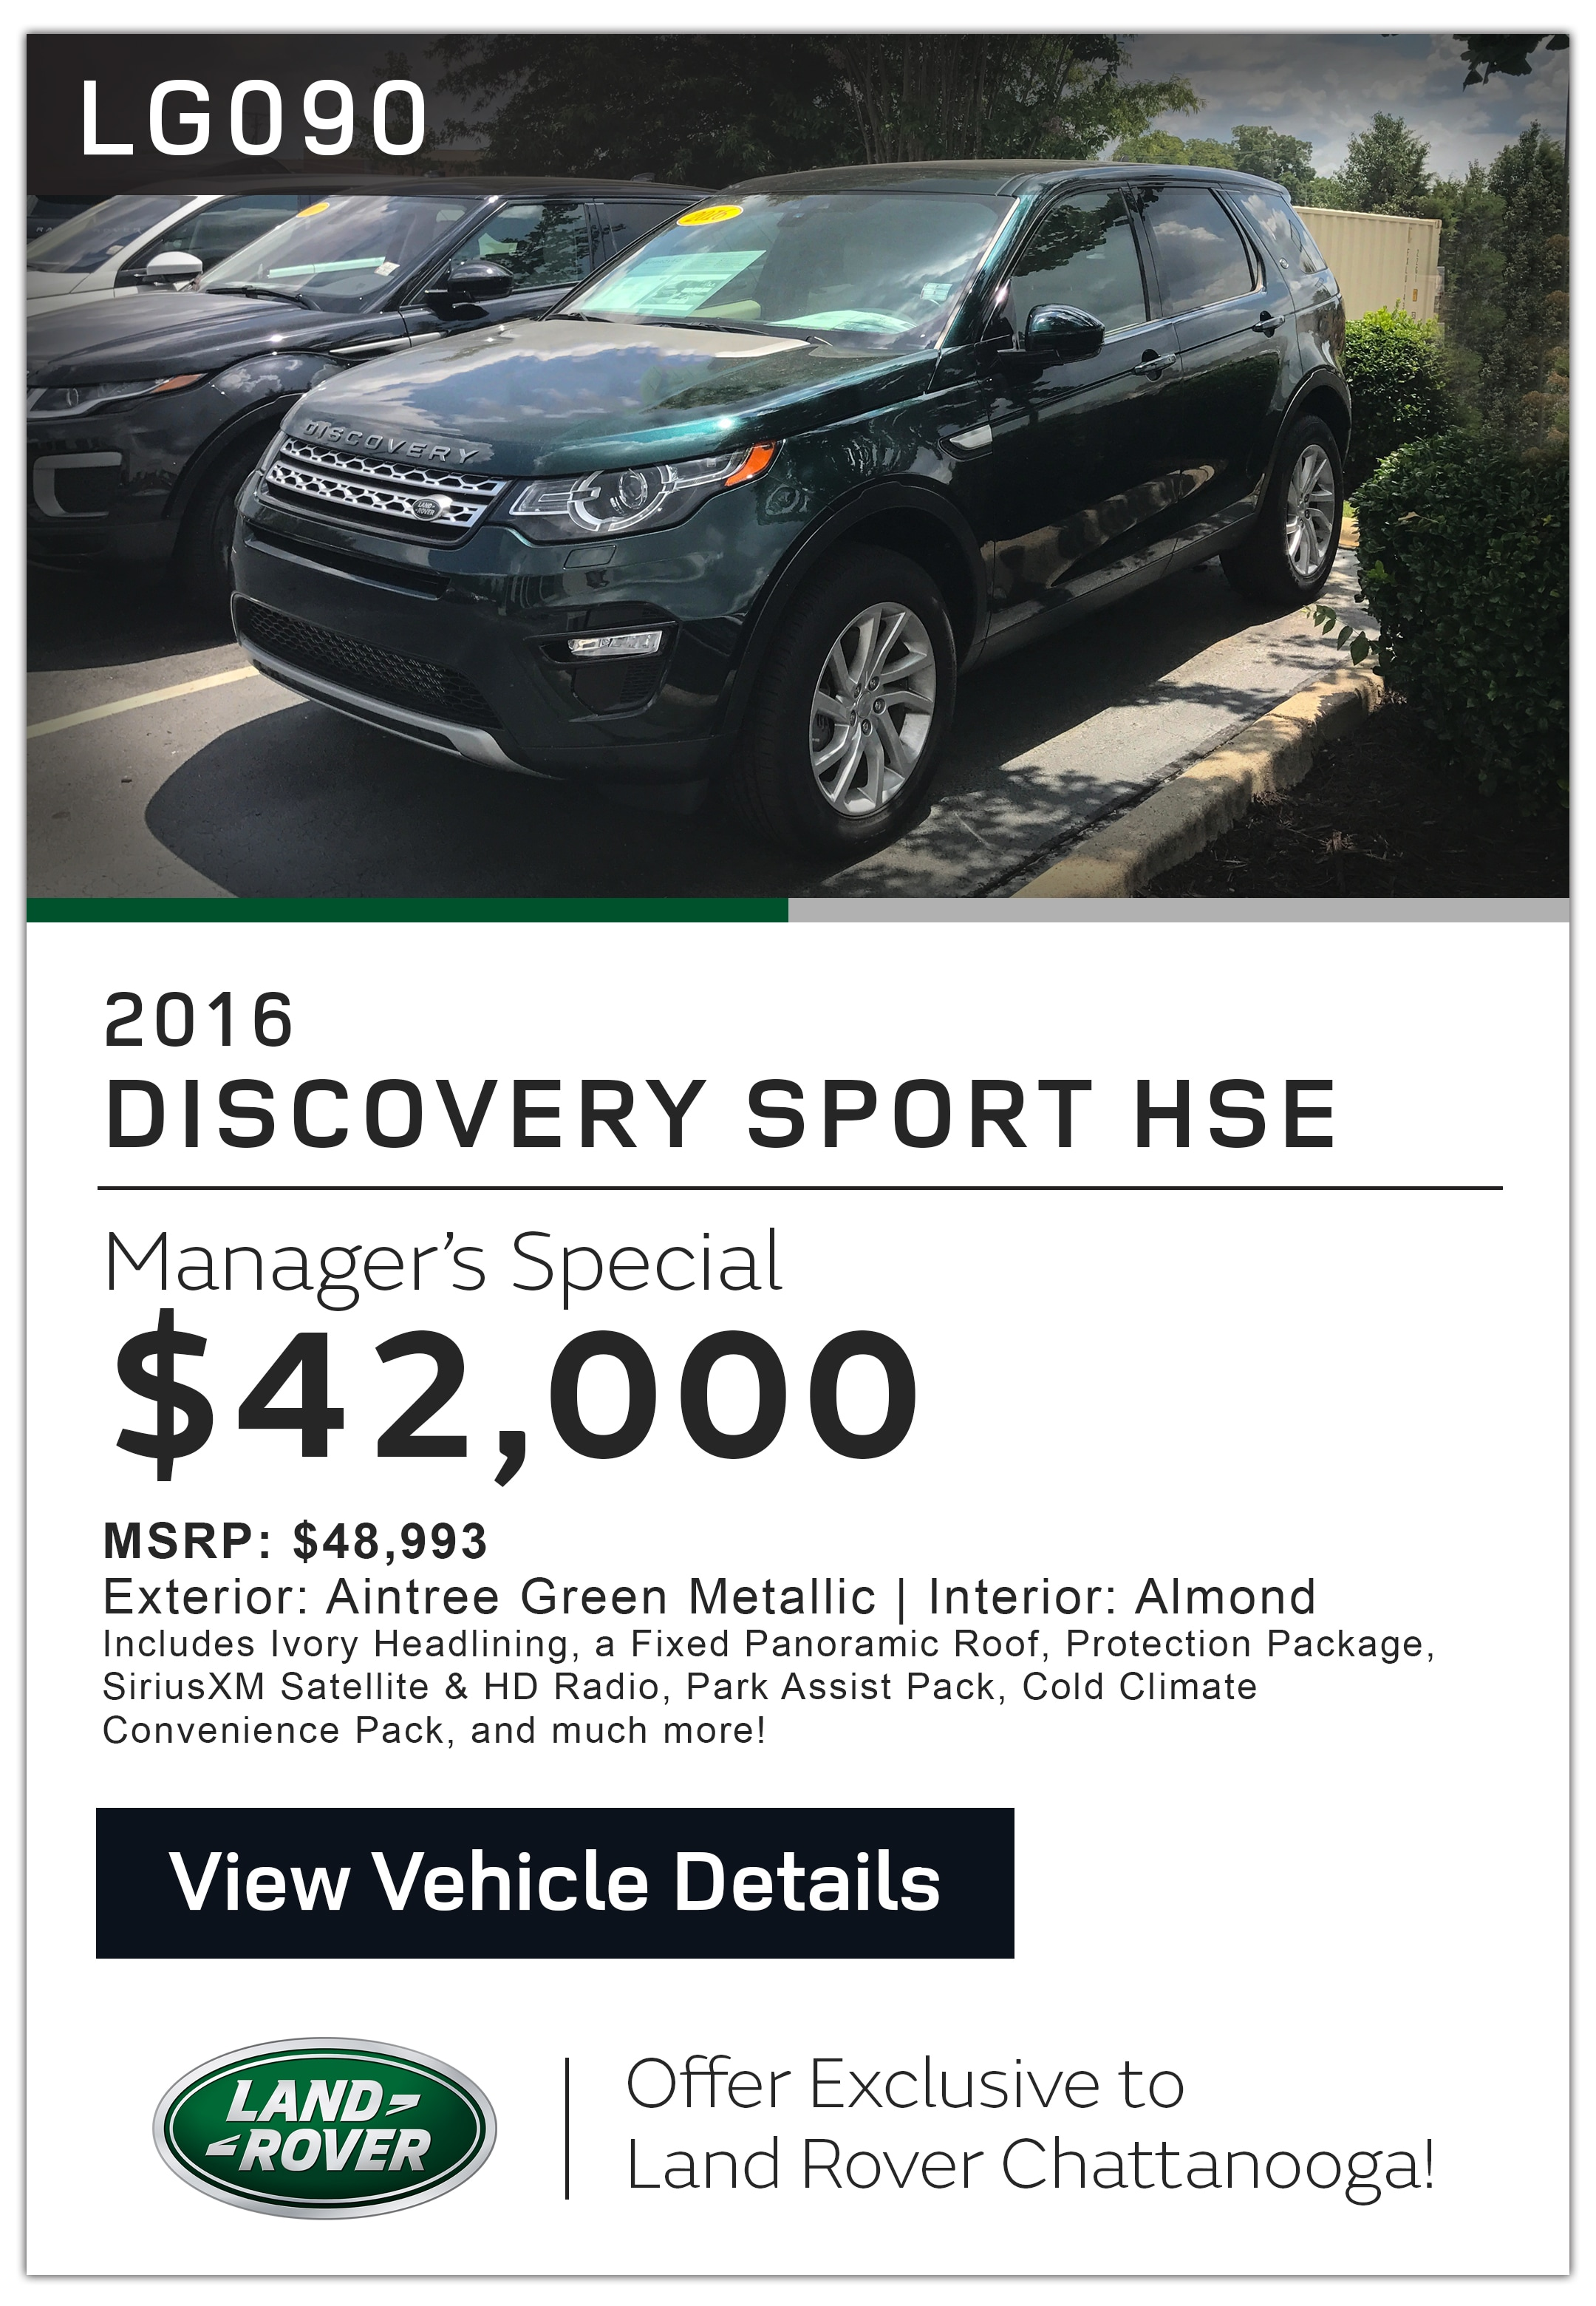 rover cars new used land landrover il chicago specials